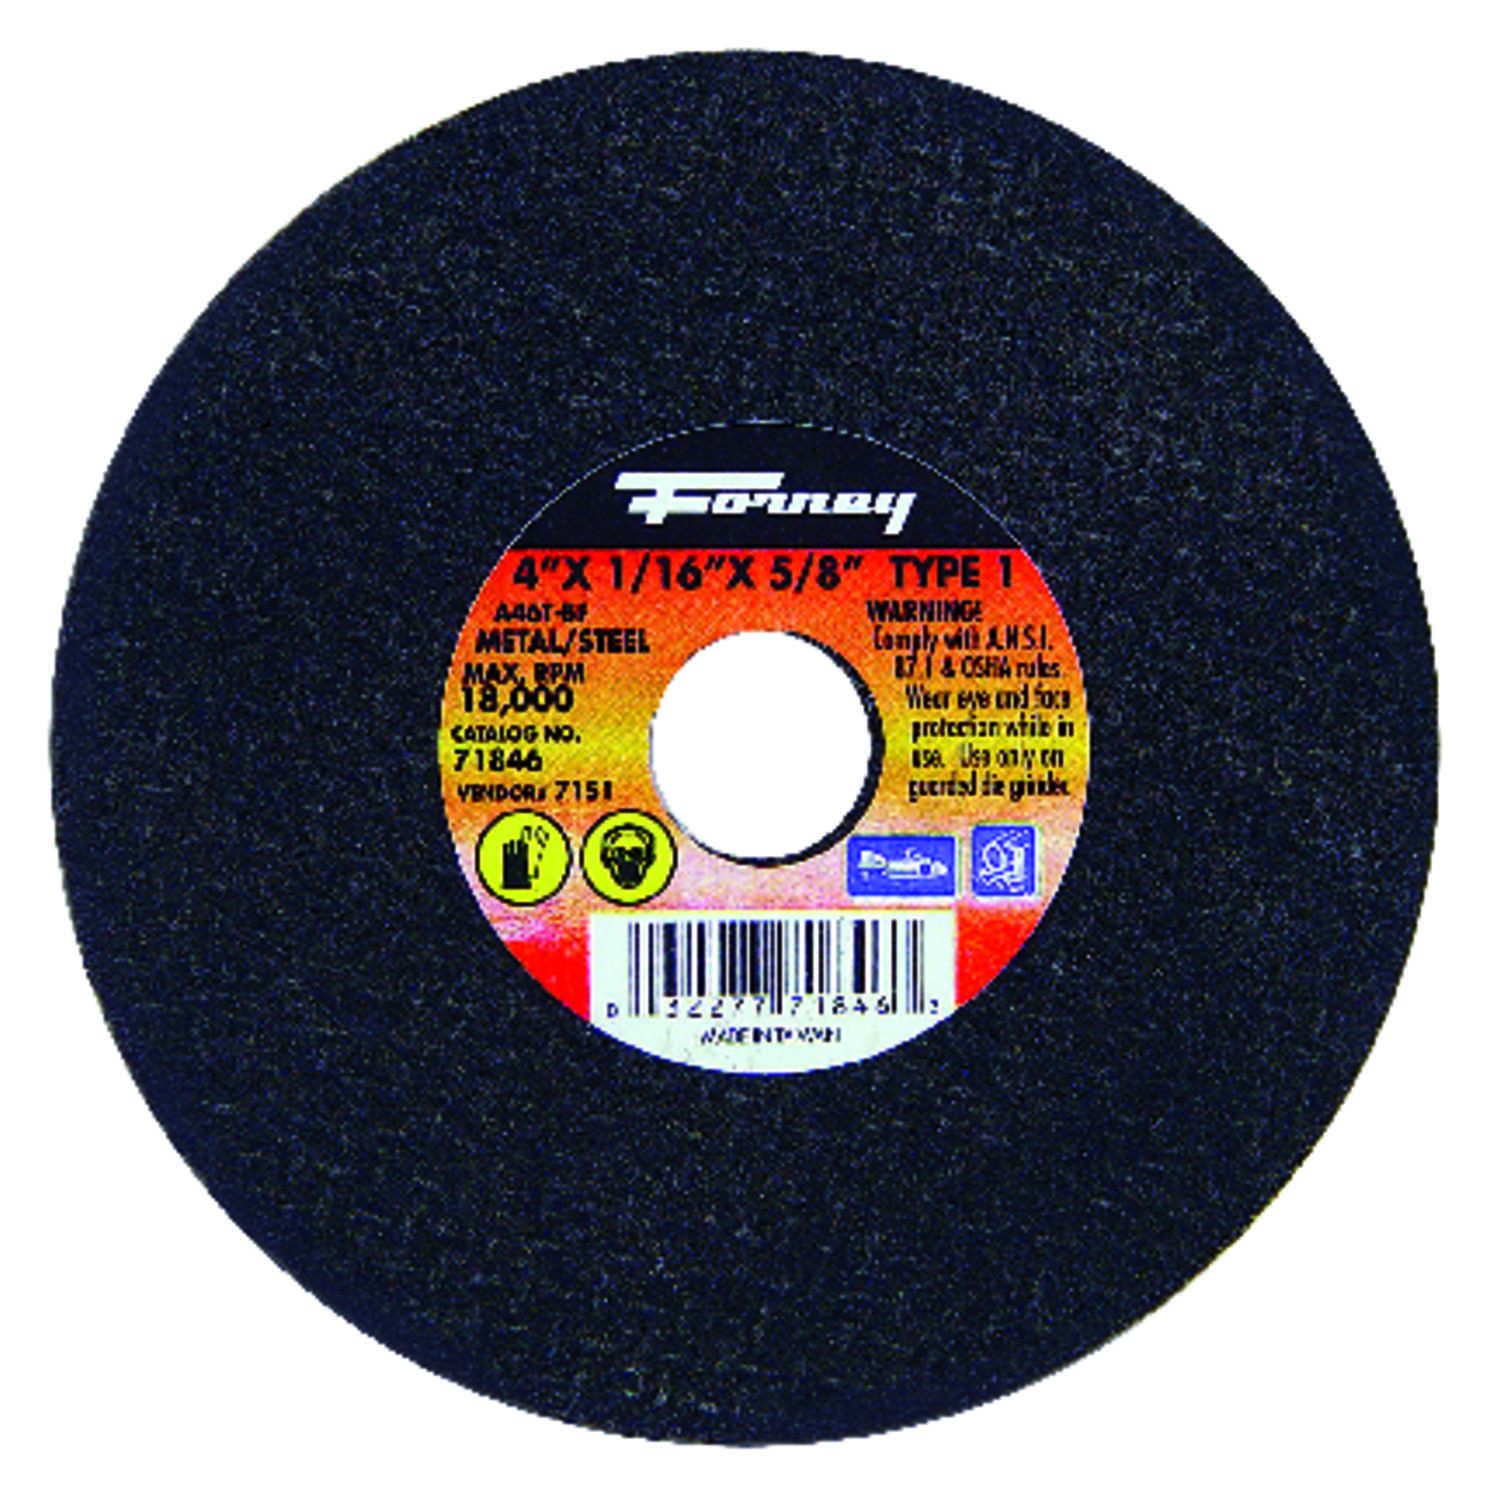 Forney  4 in. Aluminum Oxide  Metal Cut-Off Wheel  1/16 in. thick  x 5/8 in.  1 pc.